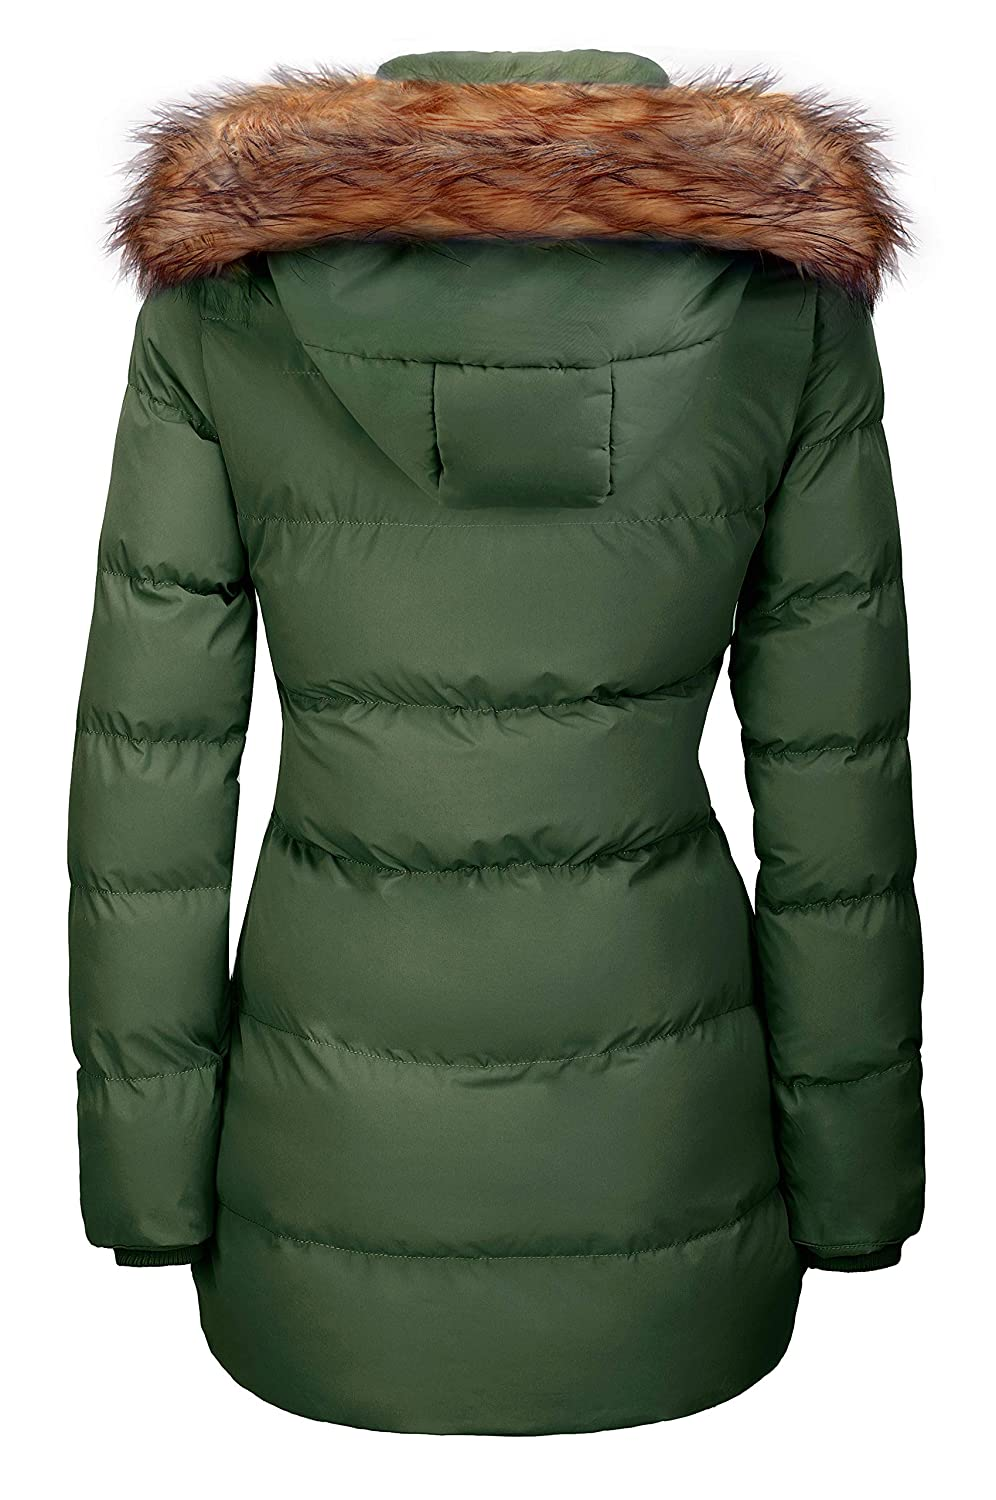 c6c072e12b Amazon.com: WenVen Women's Winter Thicken Puffer Coat with Fur Trim  Removable Hood: Clothing